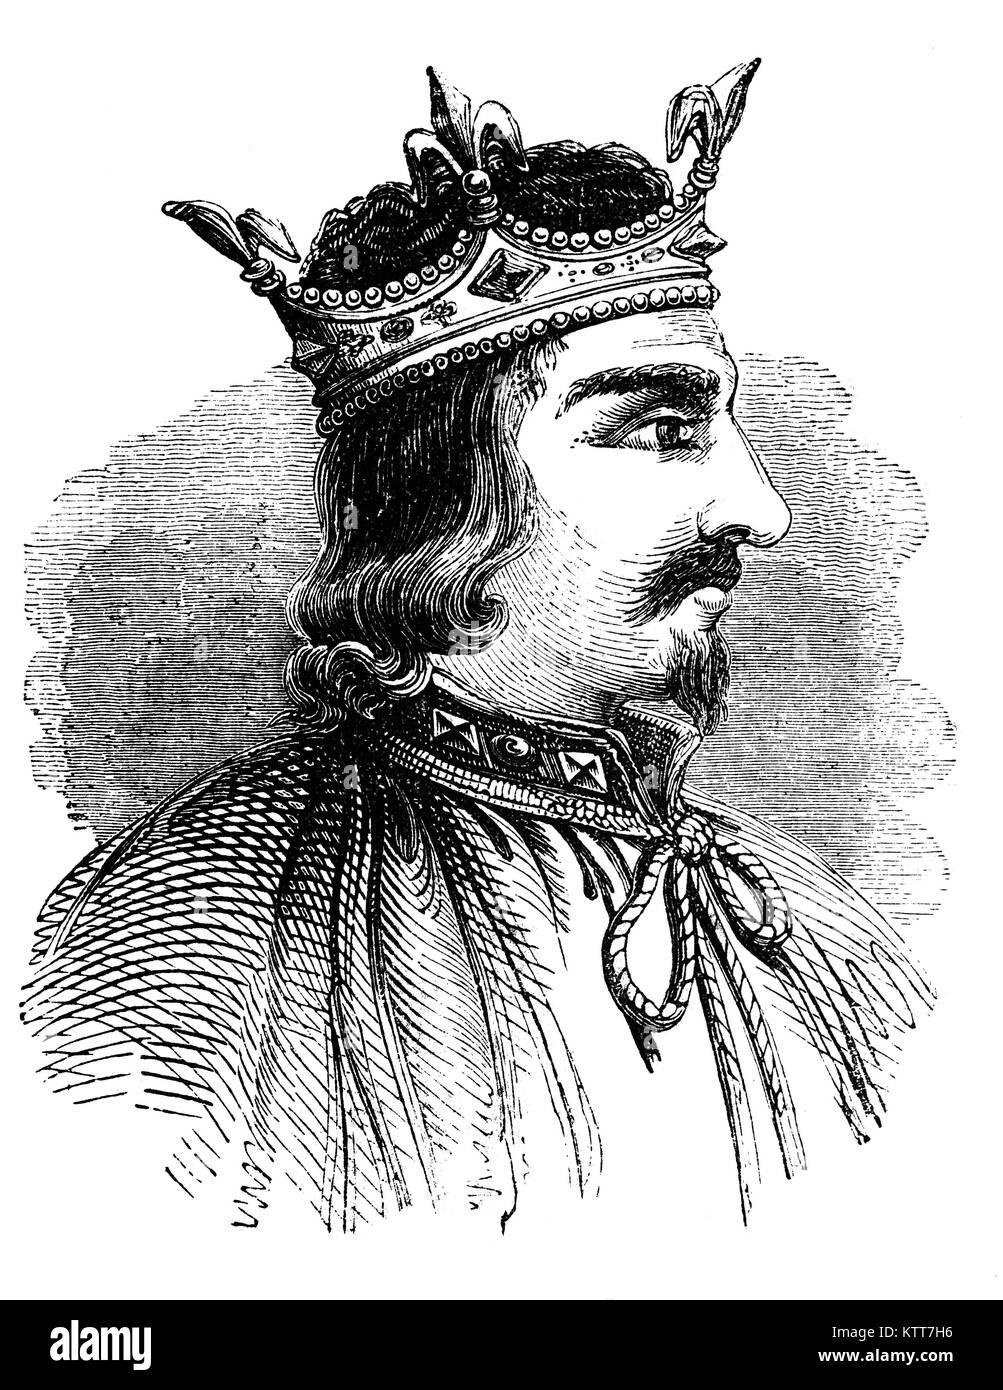 Stephen (1092/6 – 1154), often referred to as Stephen of Blois, was King of England from 1135 to his death, as well - Stock Image